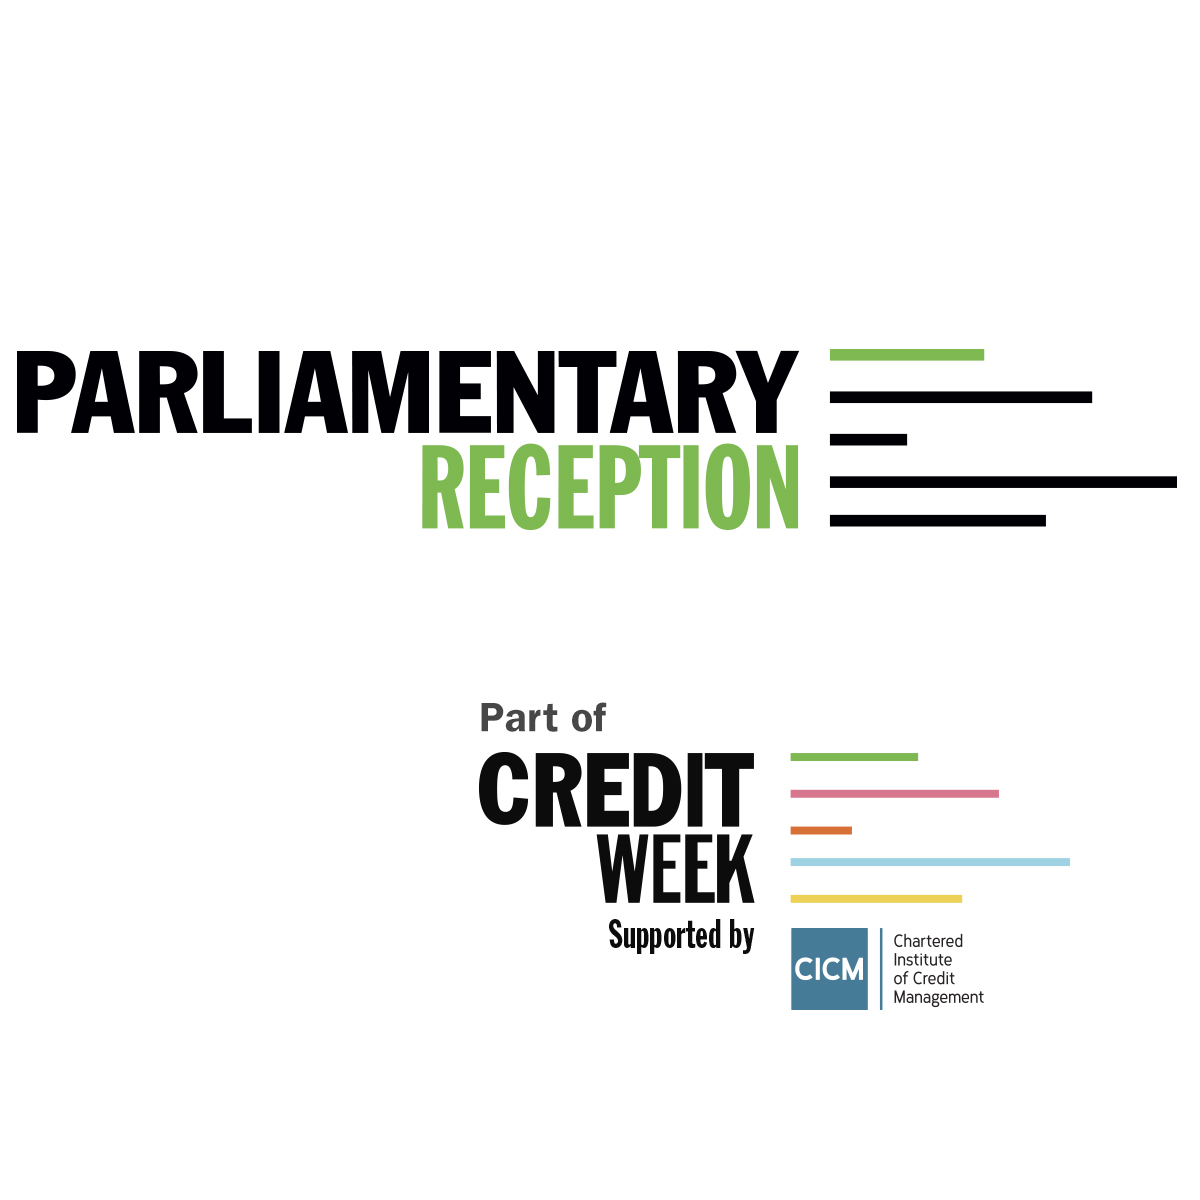 Parliamentary Receptionpart of Credit Week